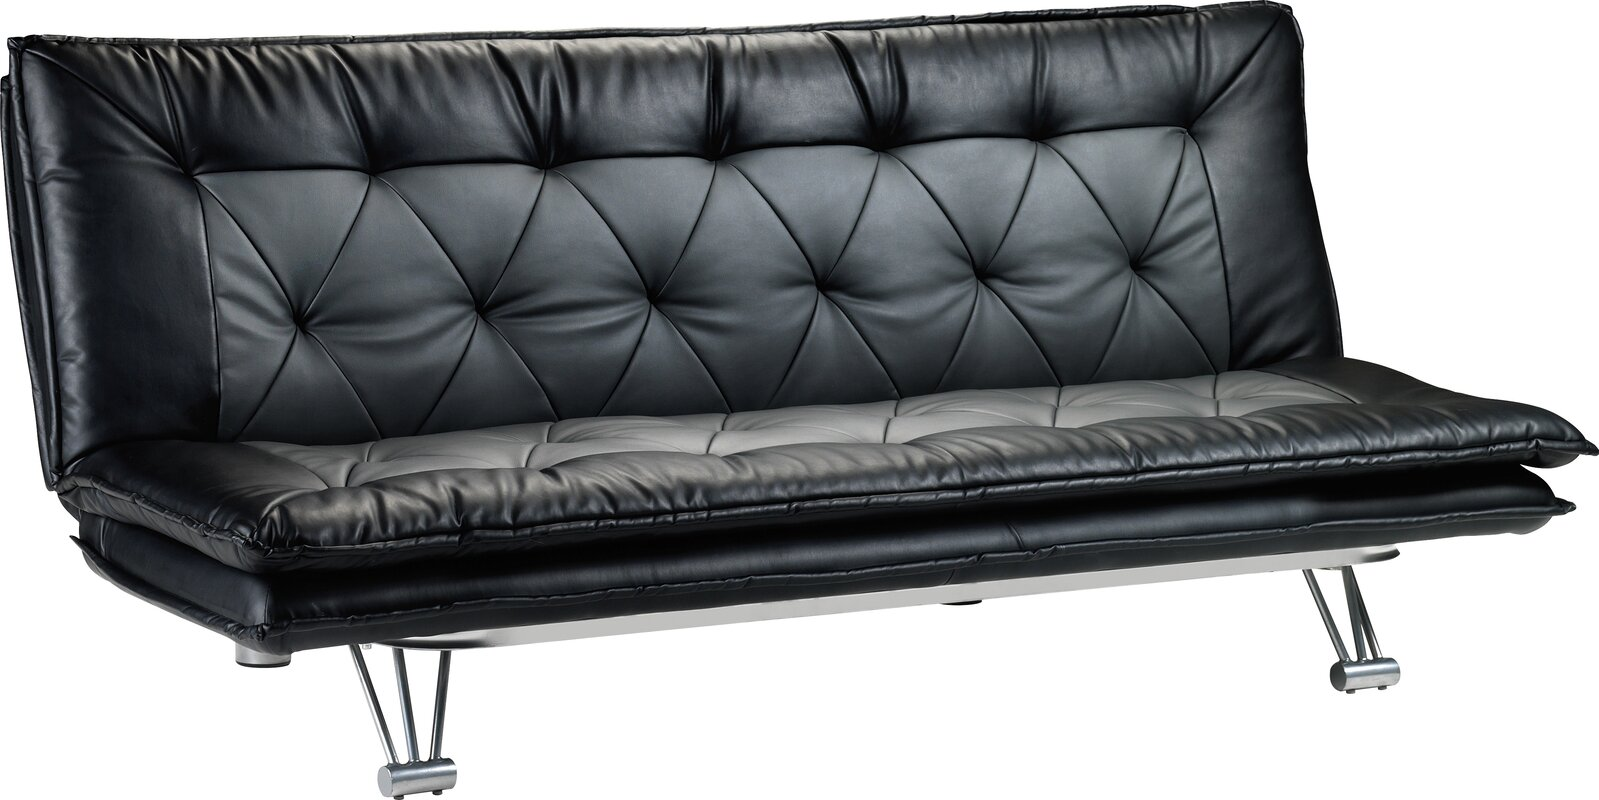 All Home Juno 4 Seater Sofa Bed & Reviews   Wayfair.co.uk